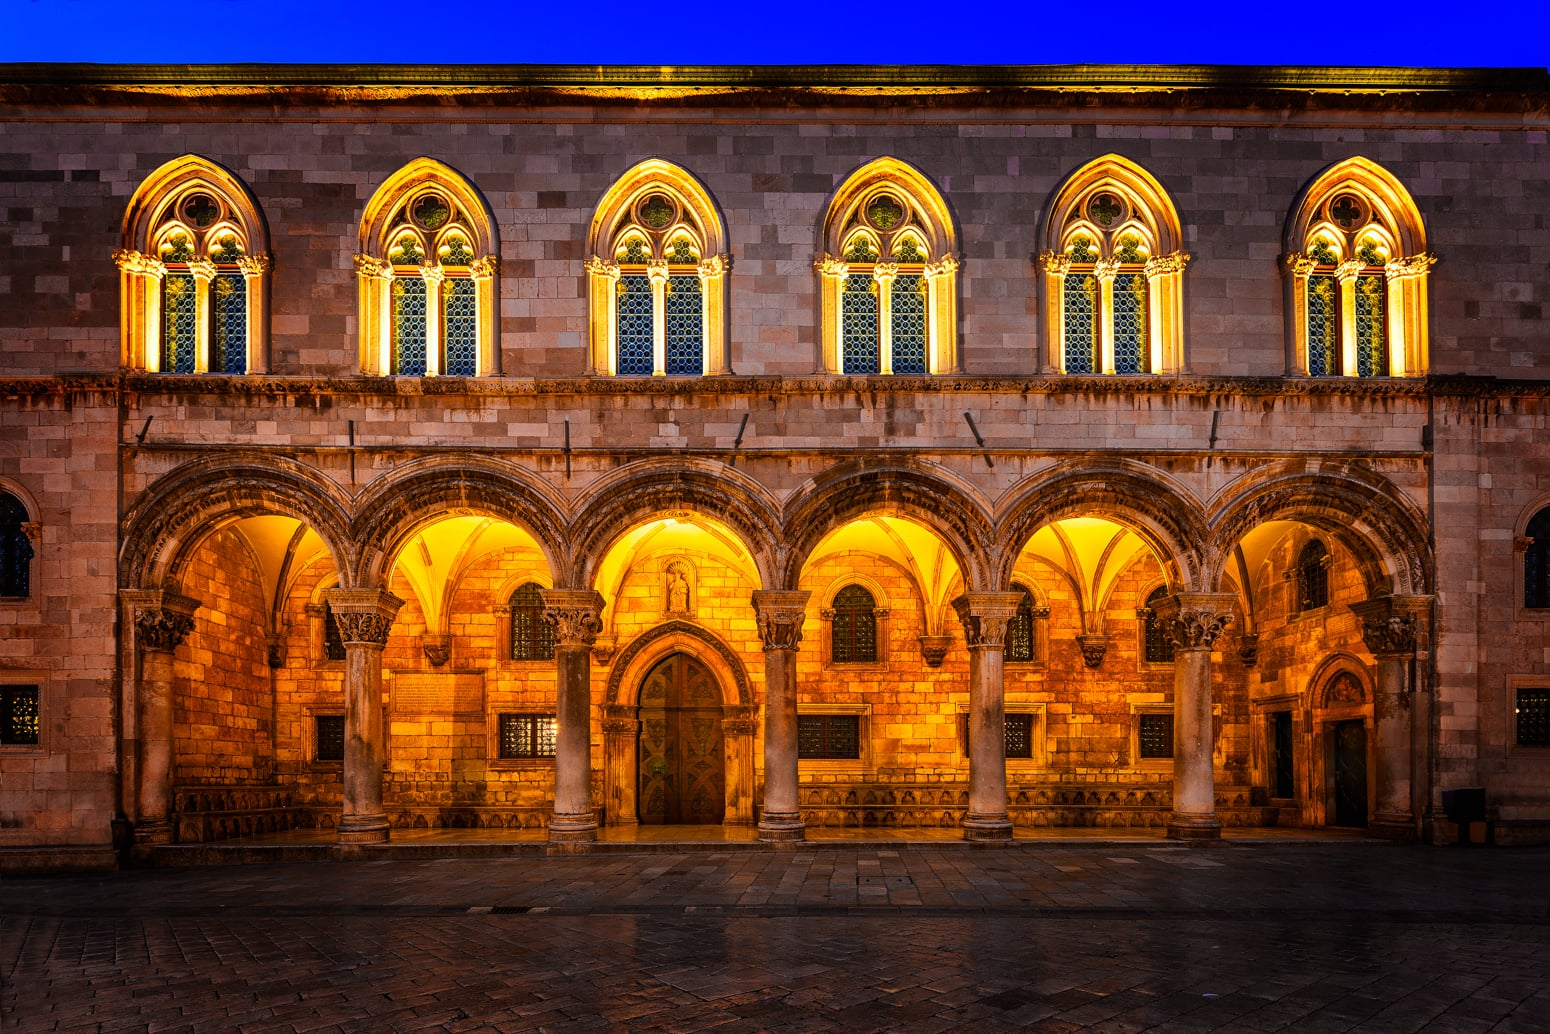 Rector's Palace in Dubrovnik, Croatia from 16th century is lit up by the light of the early morning.